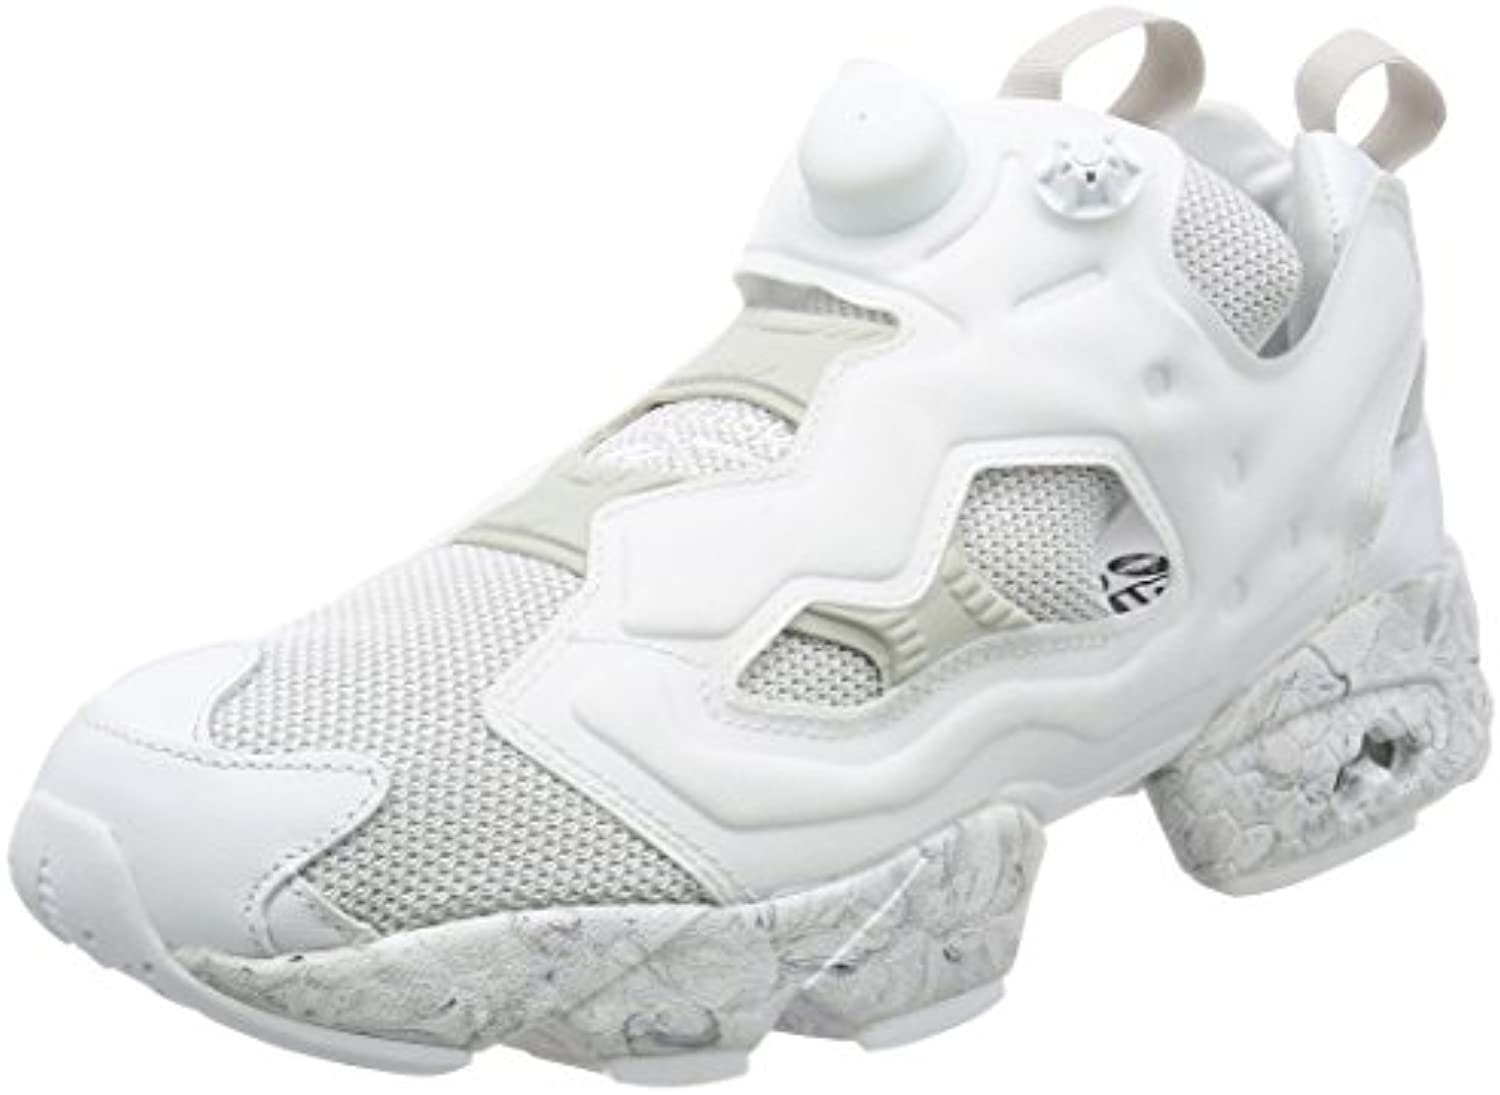 Reebok Instapump Fury Achm Mens Trainers BD1550 BD1550 Trainers 11d88a